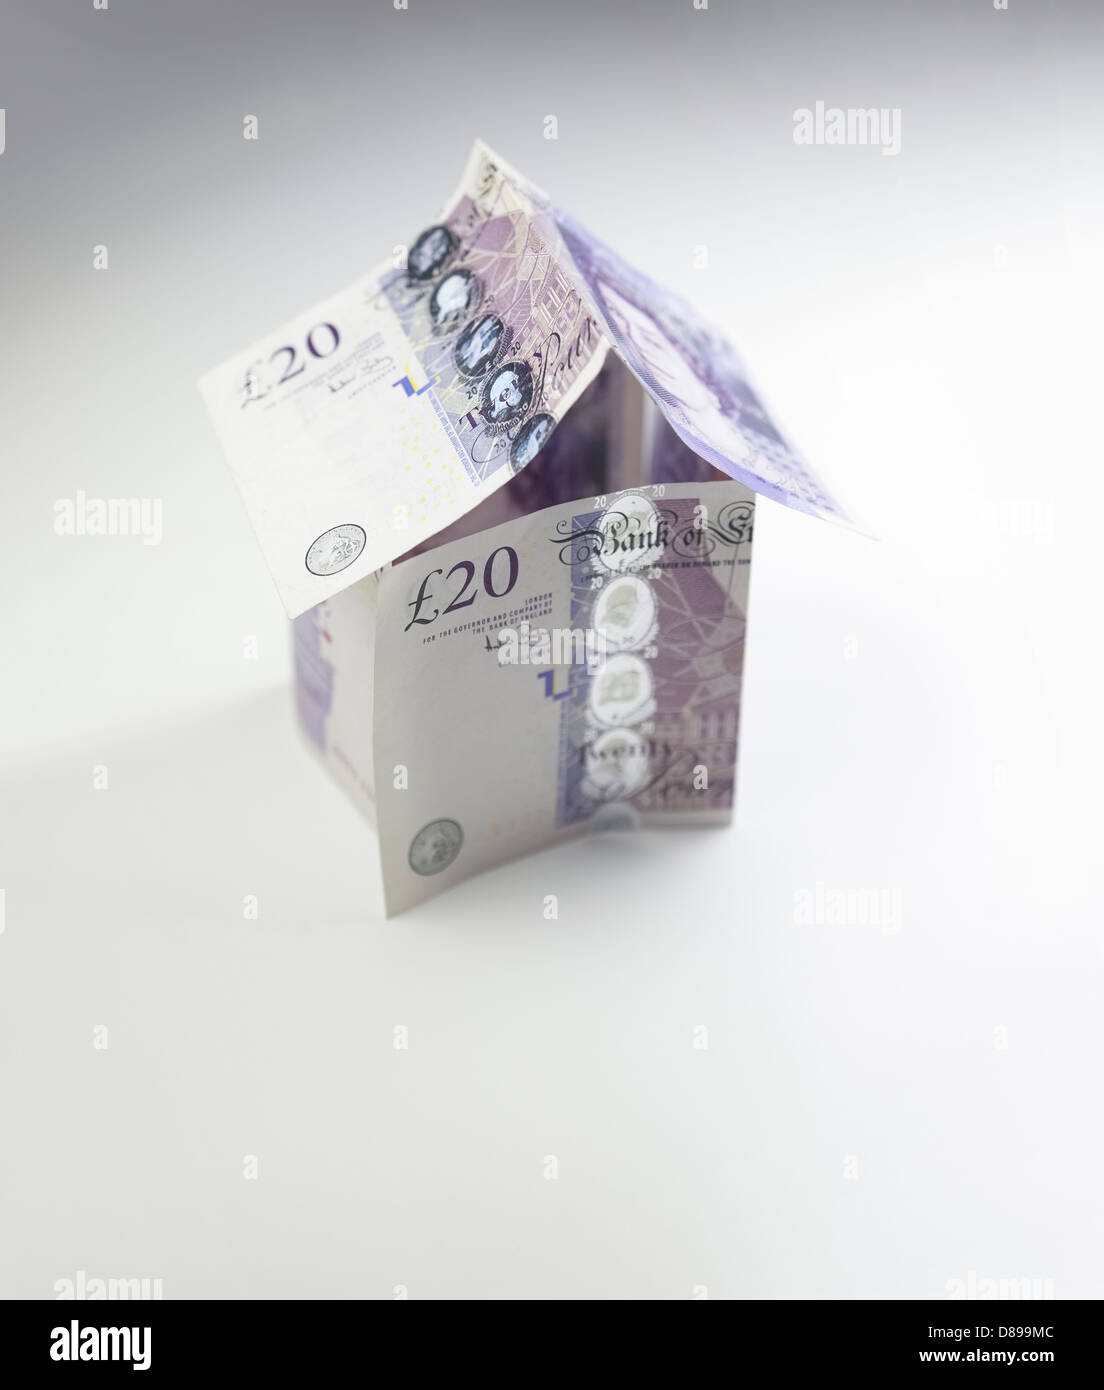 Property Investment. A house made of twenty pound notes. Stock Photo